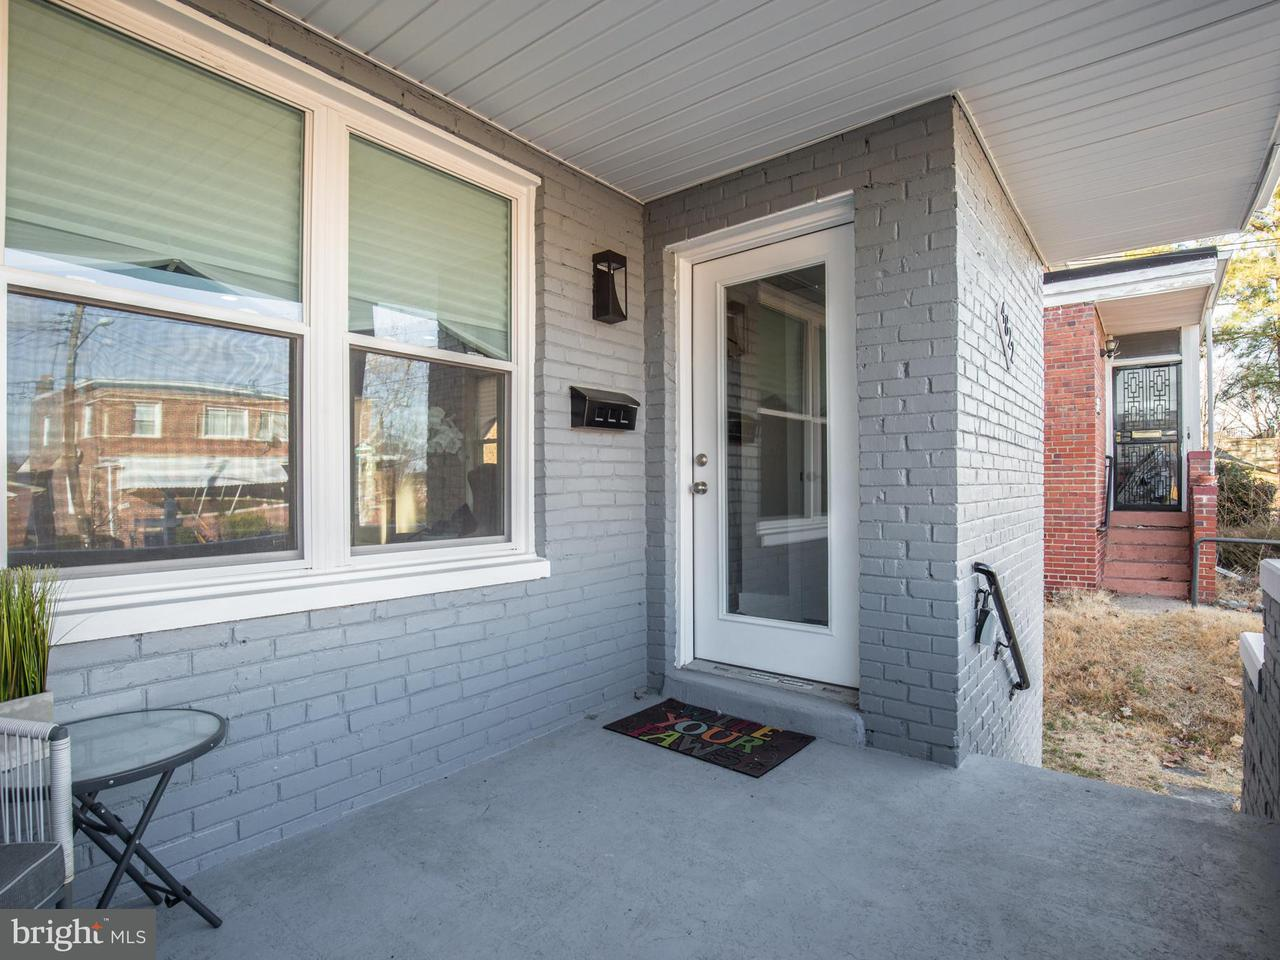 Additional photo for property listing at 4822 10th St Ne 4822 10th St Ne Washington, District Of Columbia 20017 United States